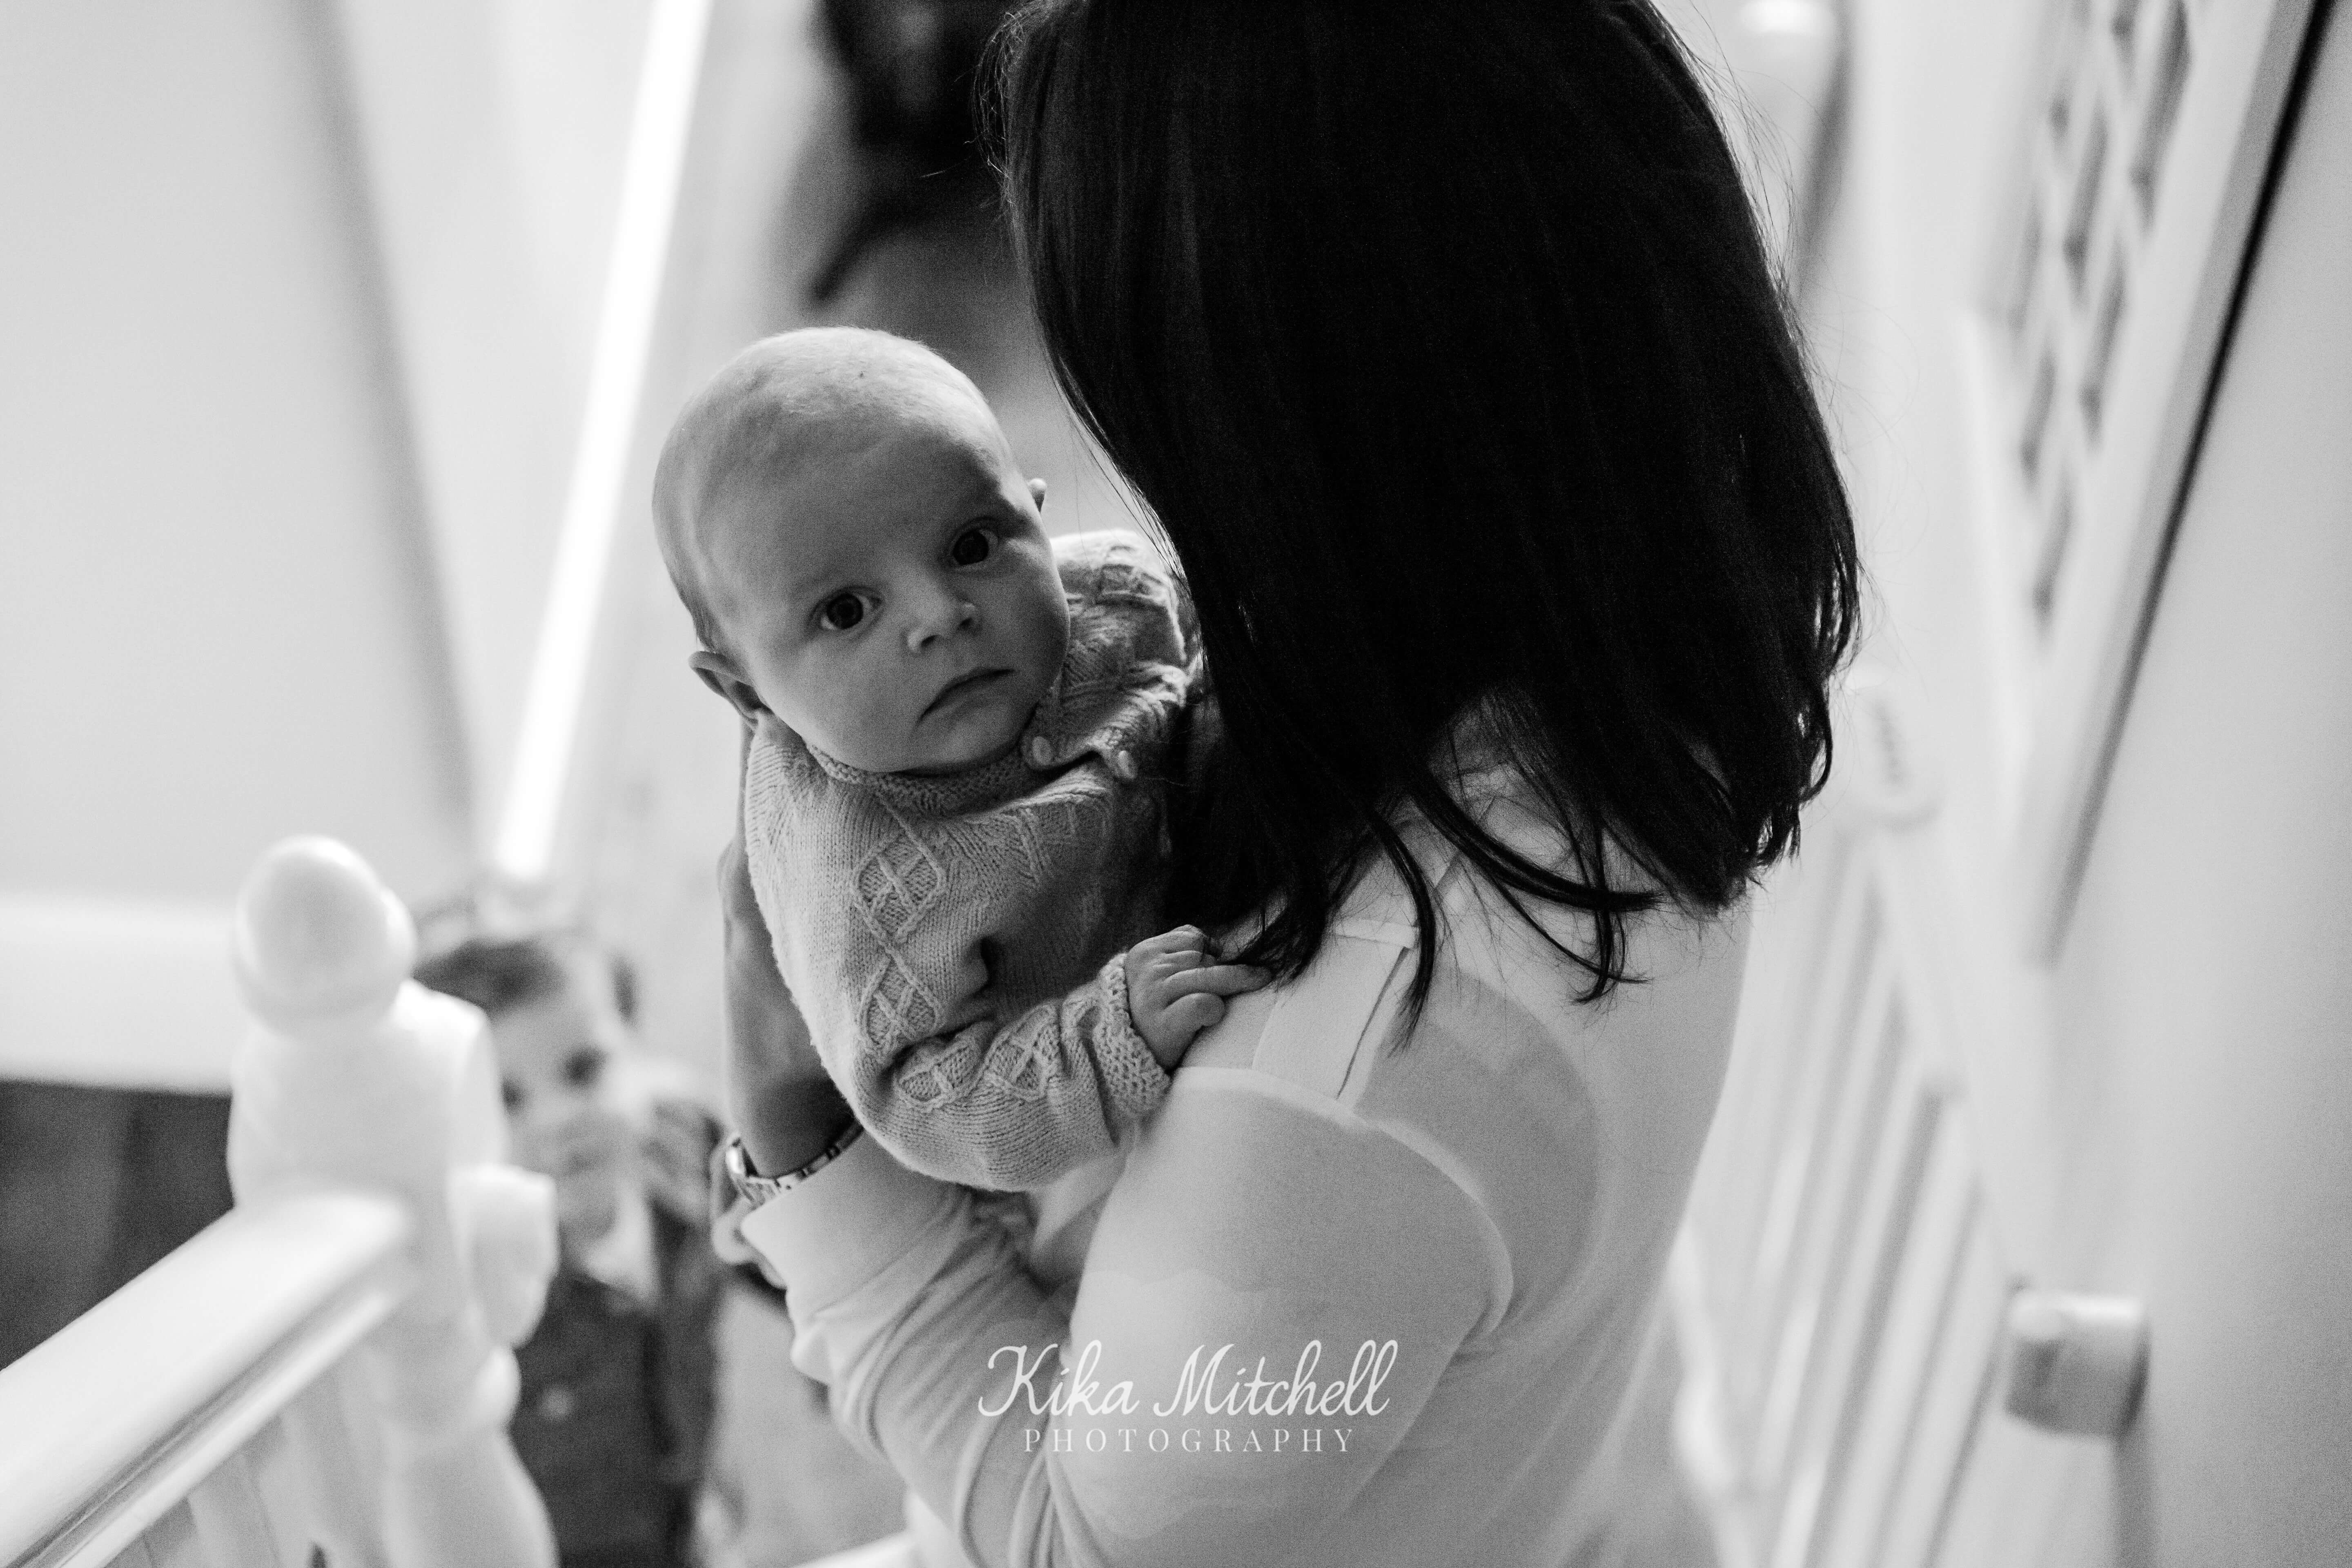 LIFESTYLE FAMILY PORTRAITS BY CHELMSFORD PHOTOGRAPHER KIKA MITCHELL PHOTOGRAPHY